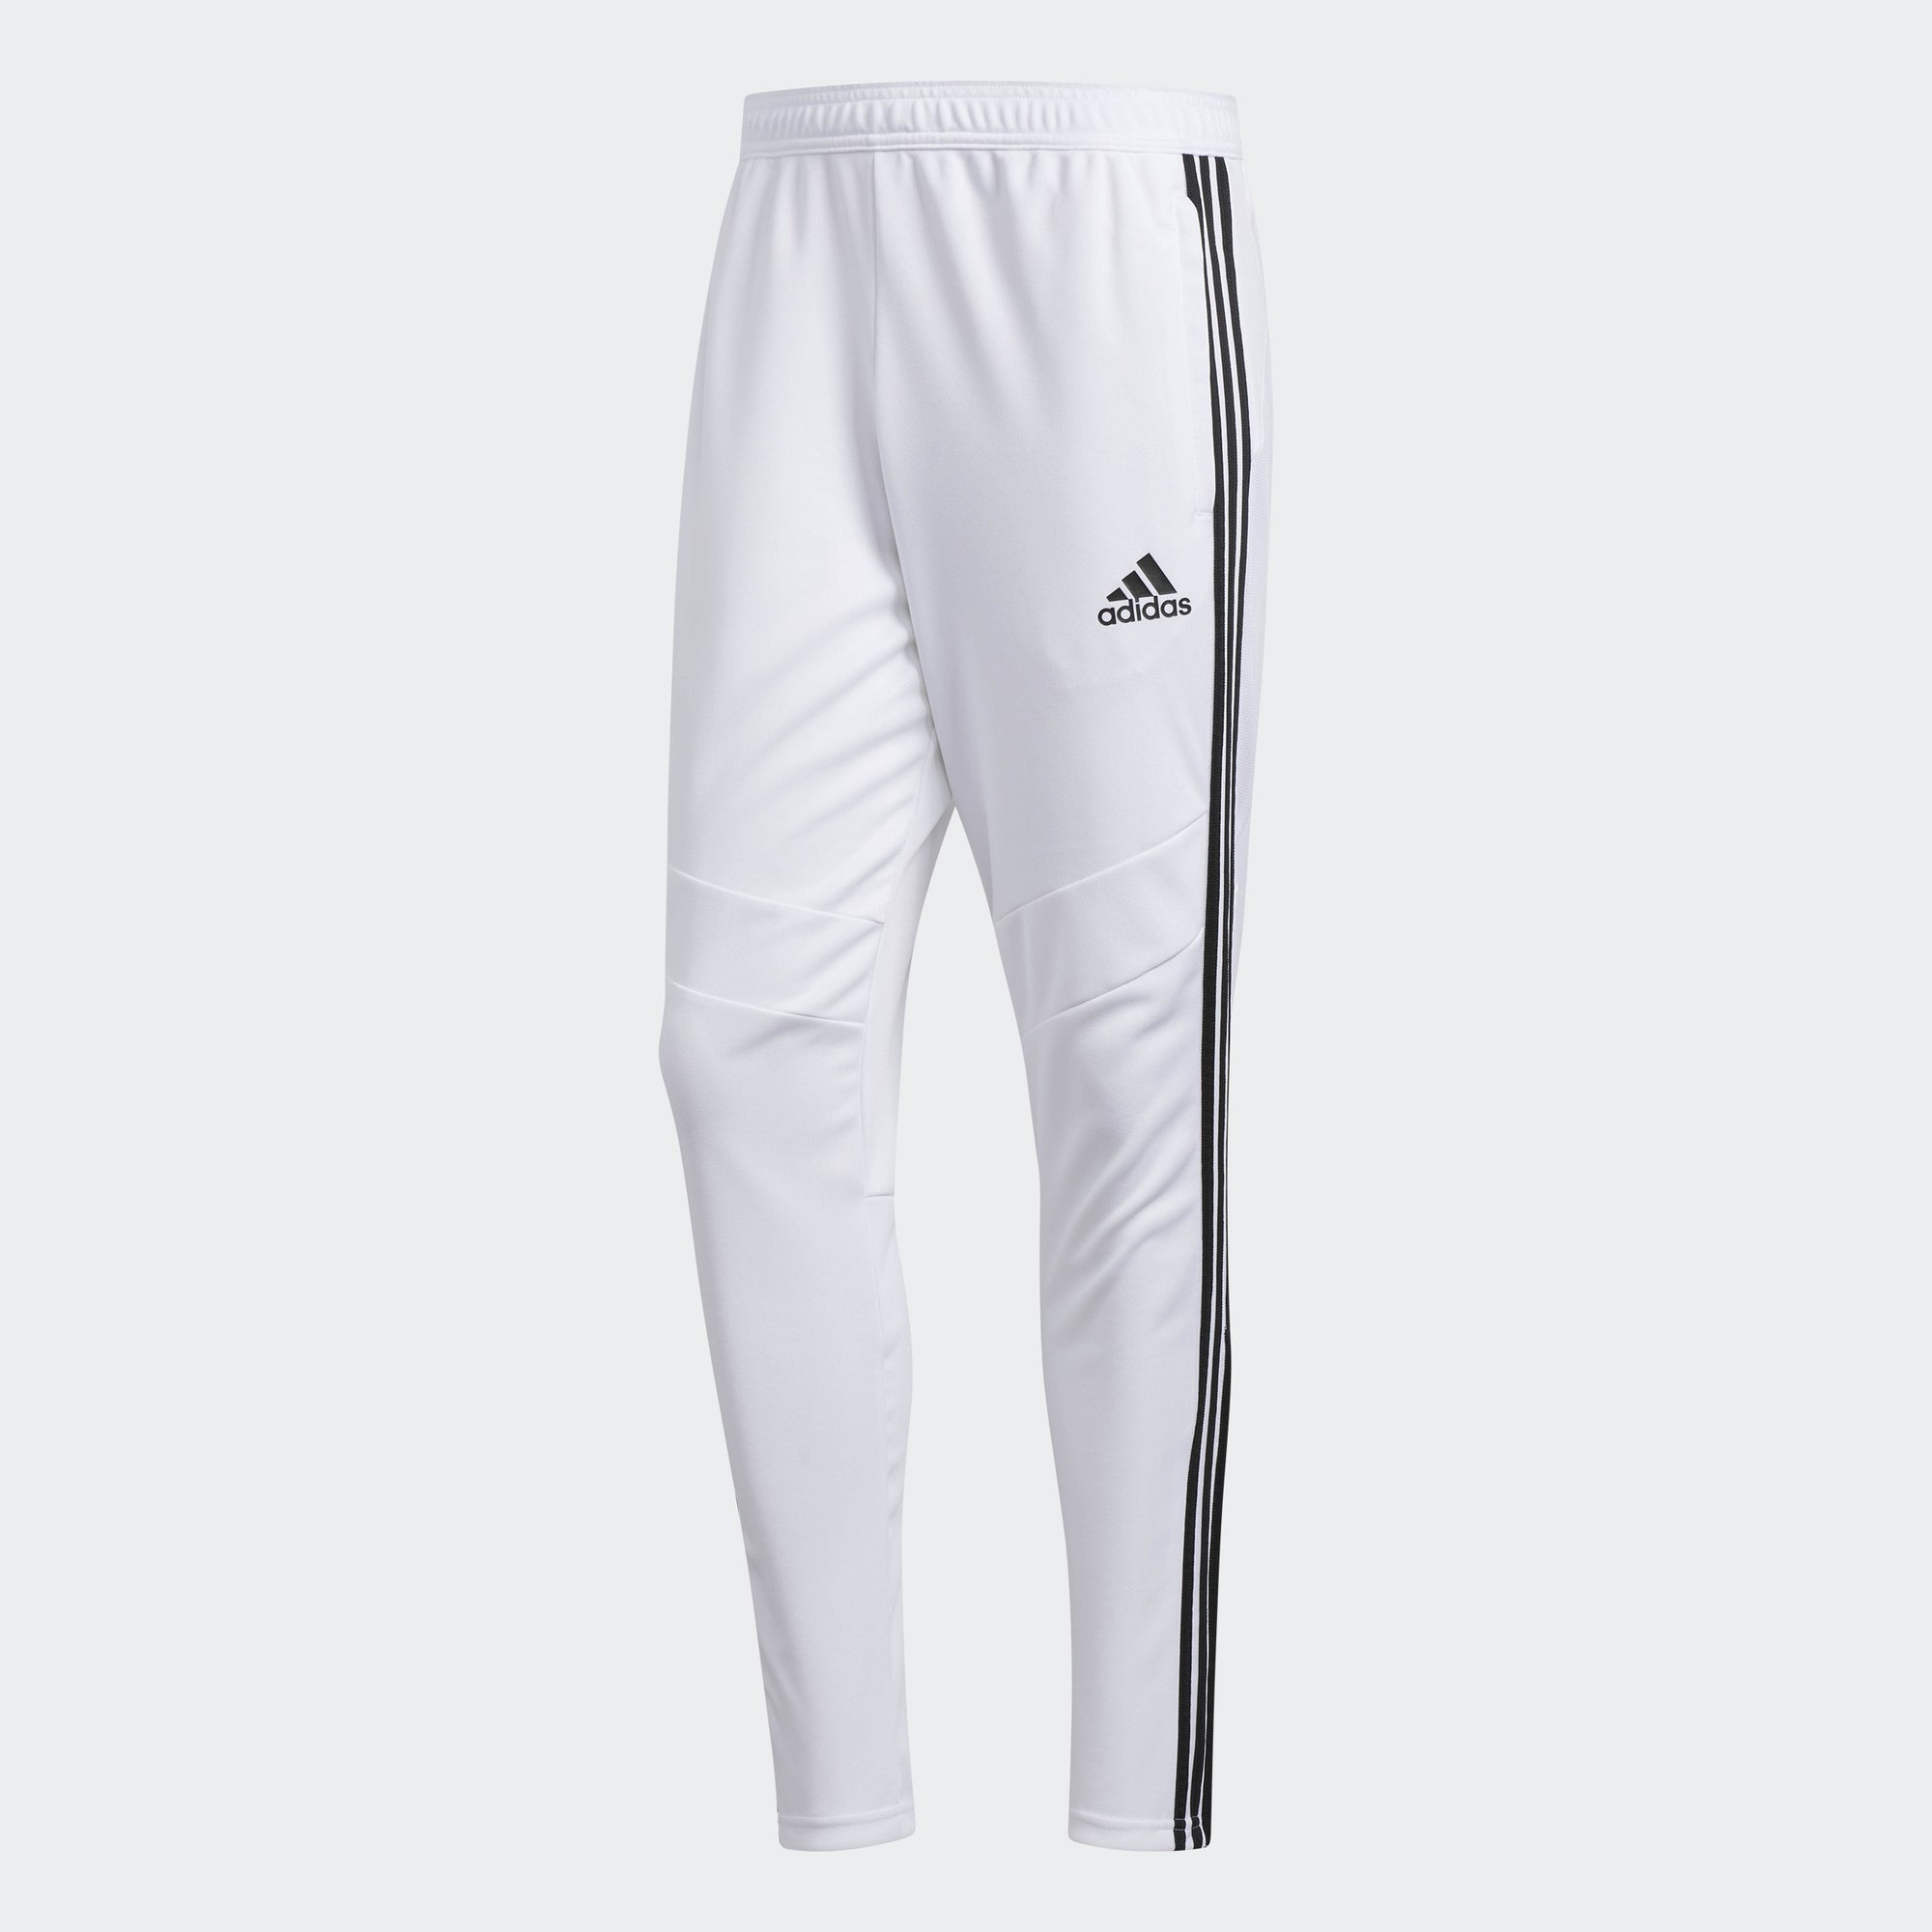 Men's Tiro 19 Training Pants - White/Black